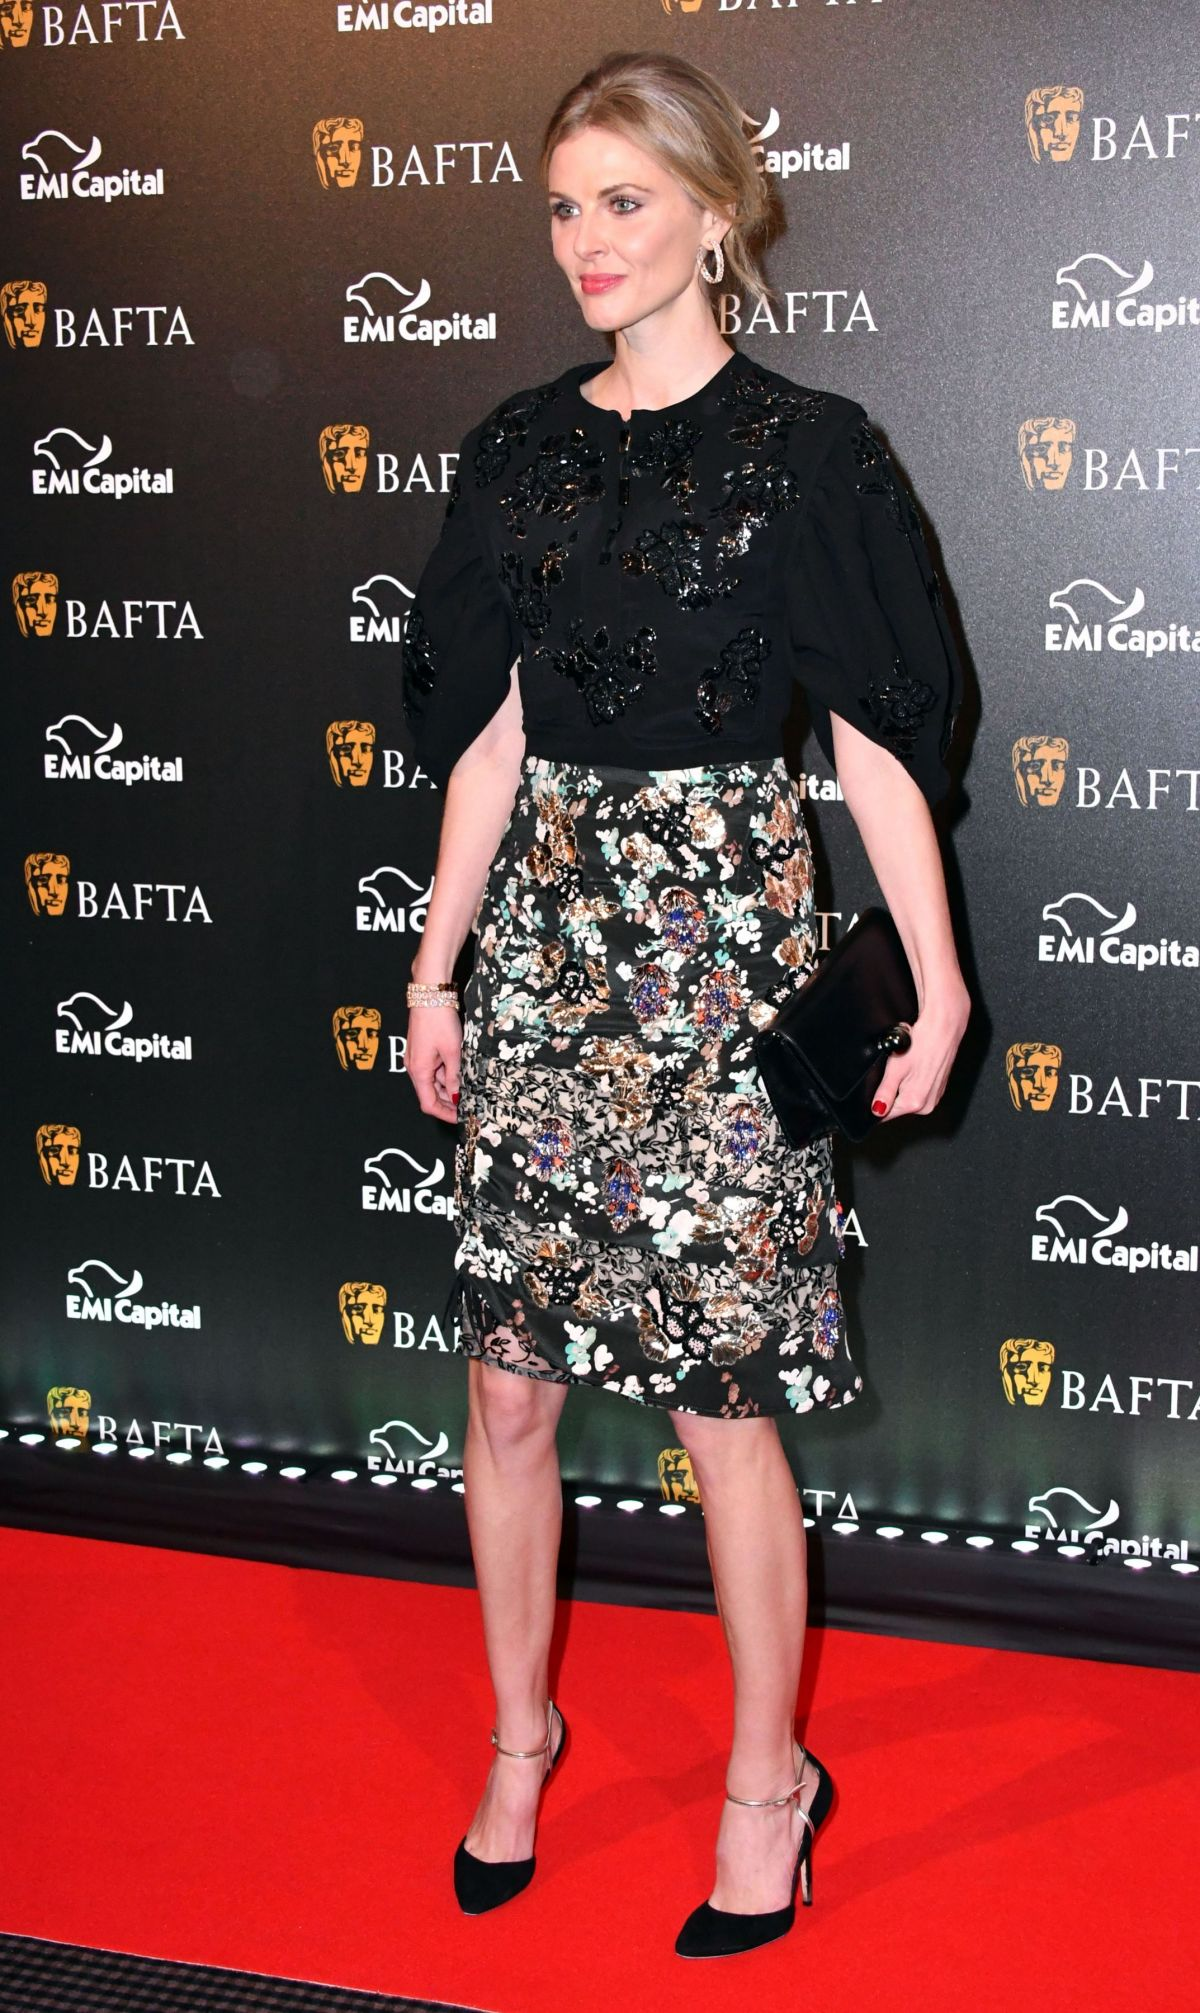 Donna air at pre bafta dinner in london nudes (58 photos), Is a cute Celebrites pic